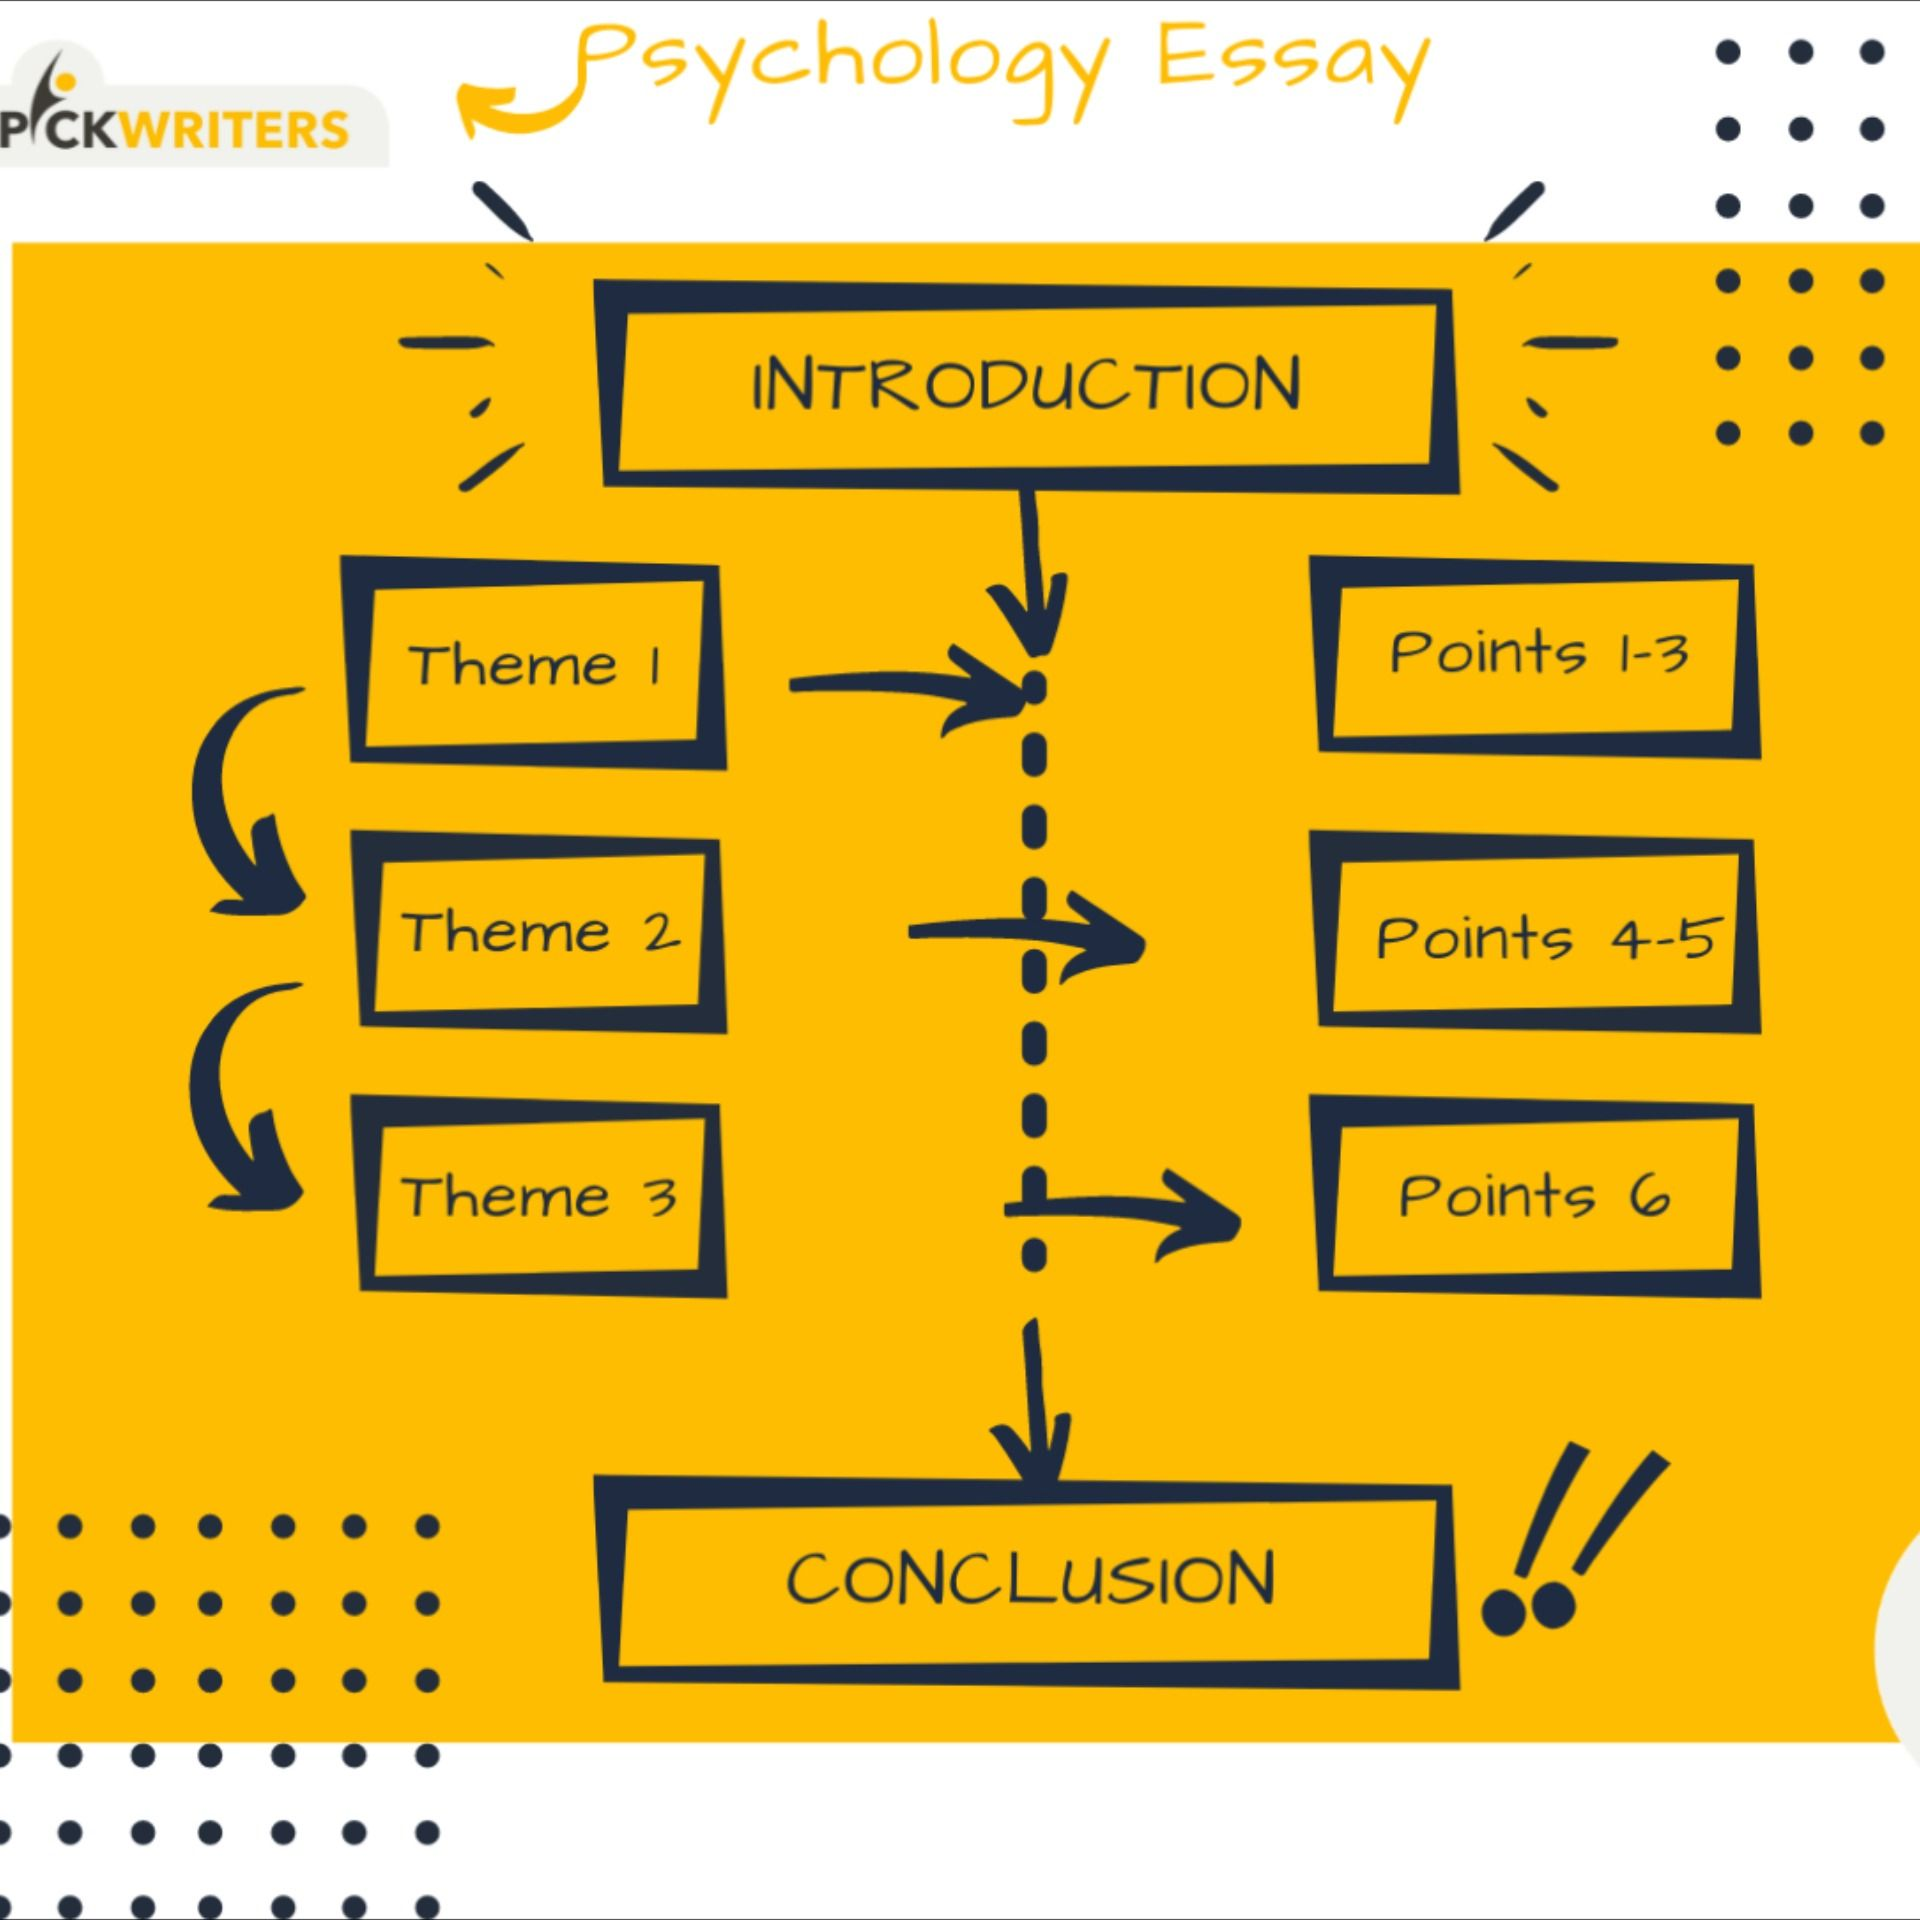 Psychology Essay Writing Structure How To Write A In 2020